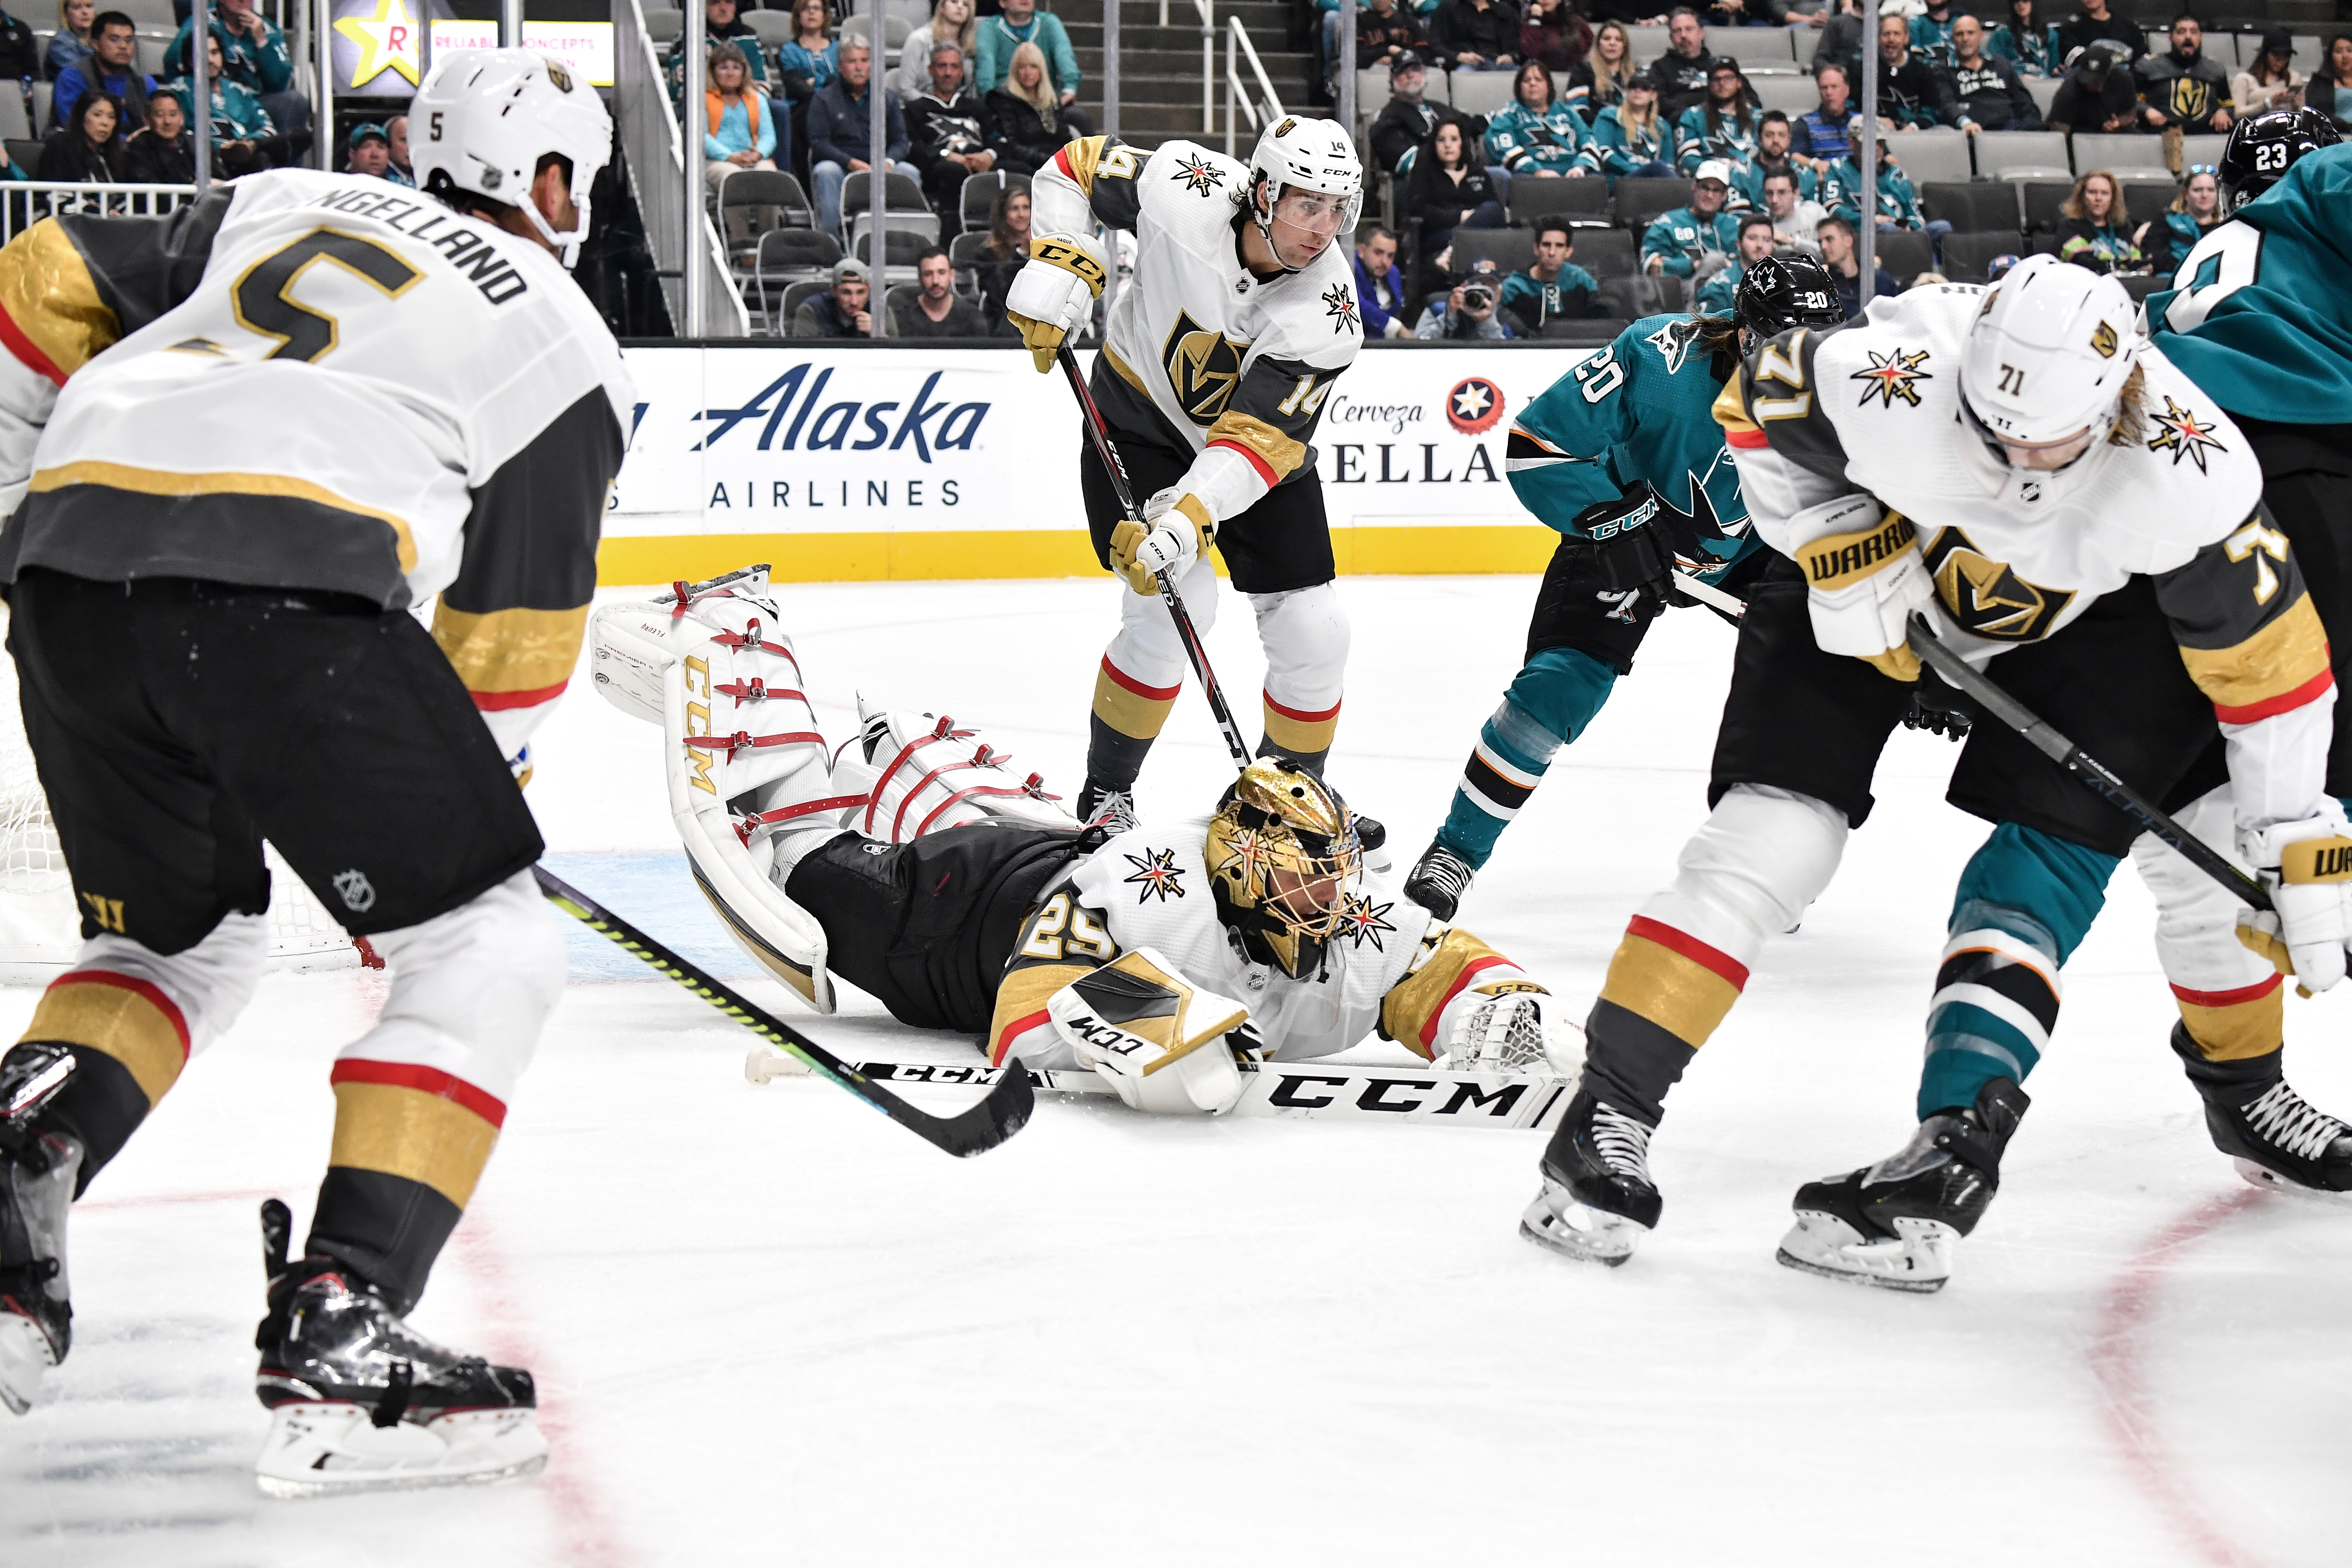 Marc-Andre Fleury #29 of the Vegas Golden Knights dives to make the save against the San Jose Sharks at SAP Center on October 4, 2019 in San Jose, California.